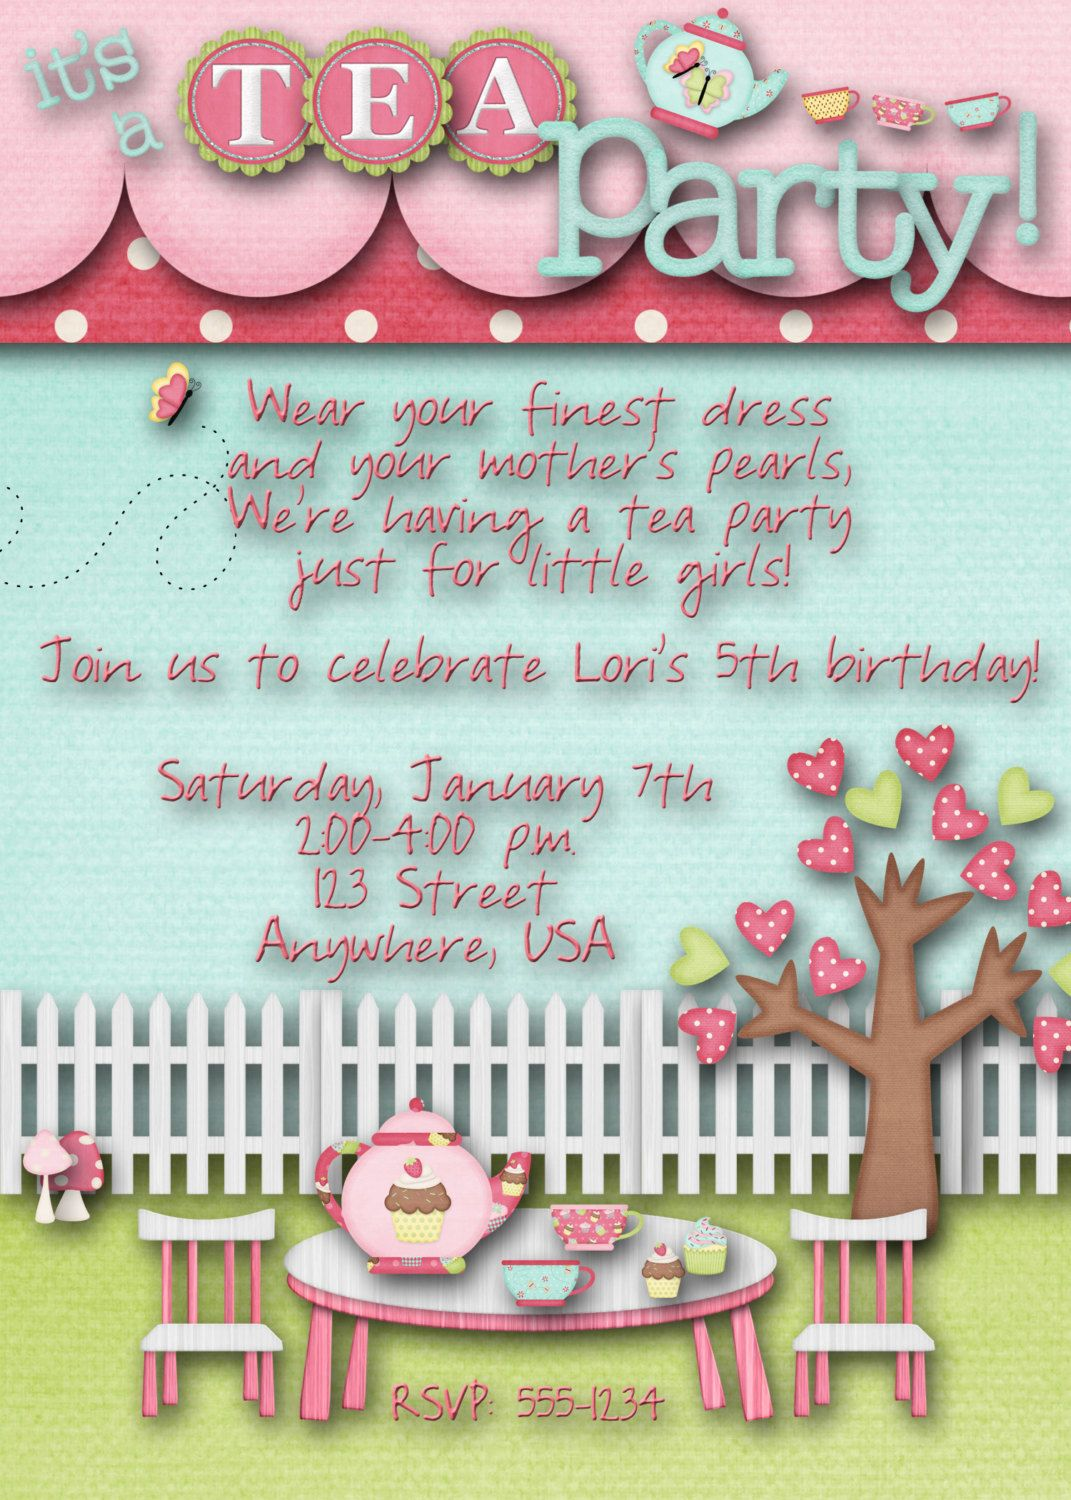 Tea Party Birthday Party Invitation | Tea party birthday, Tea ...